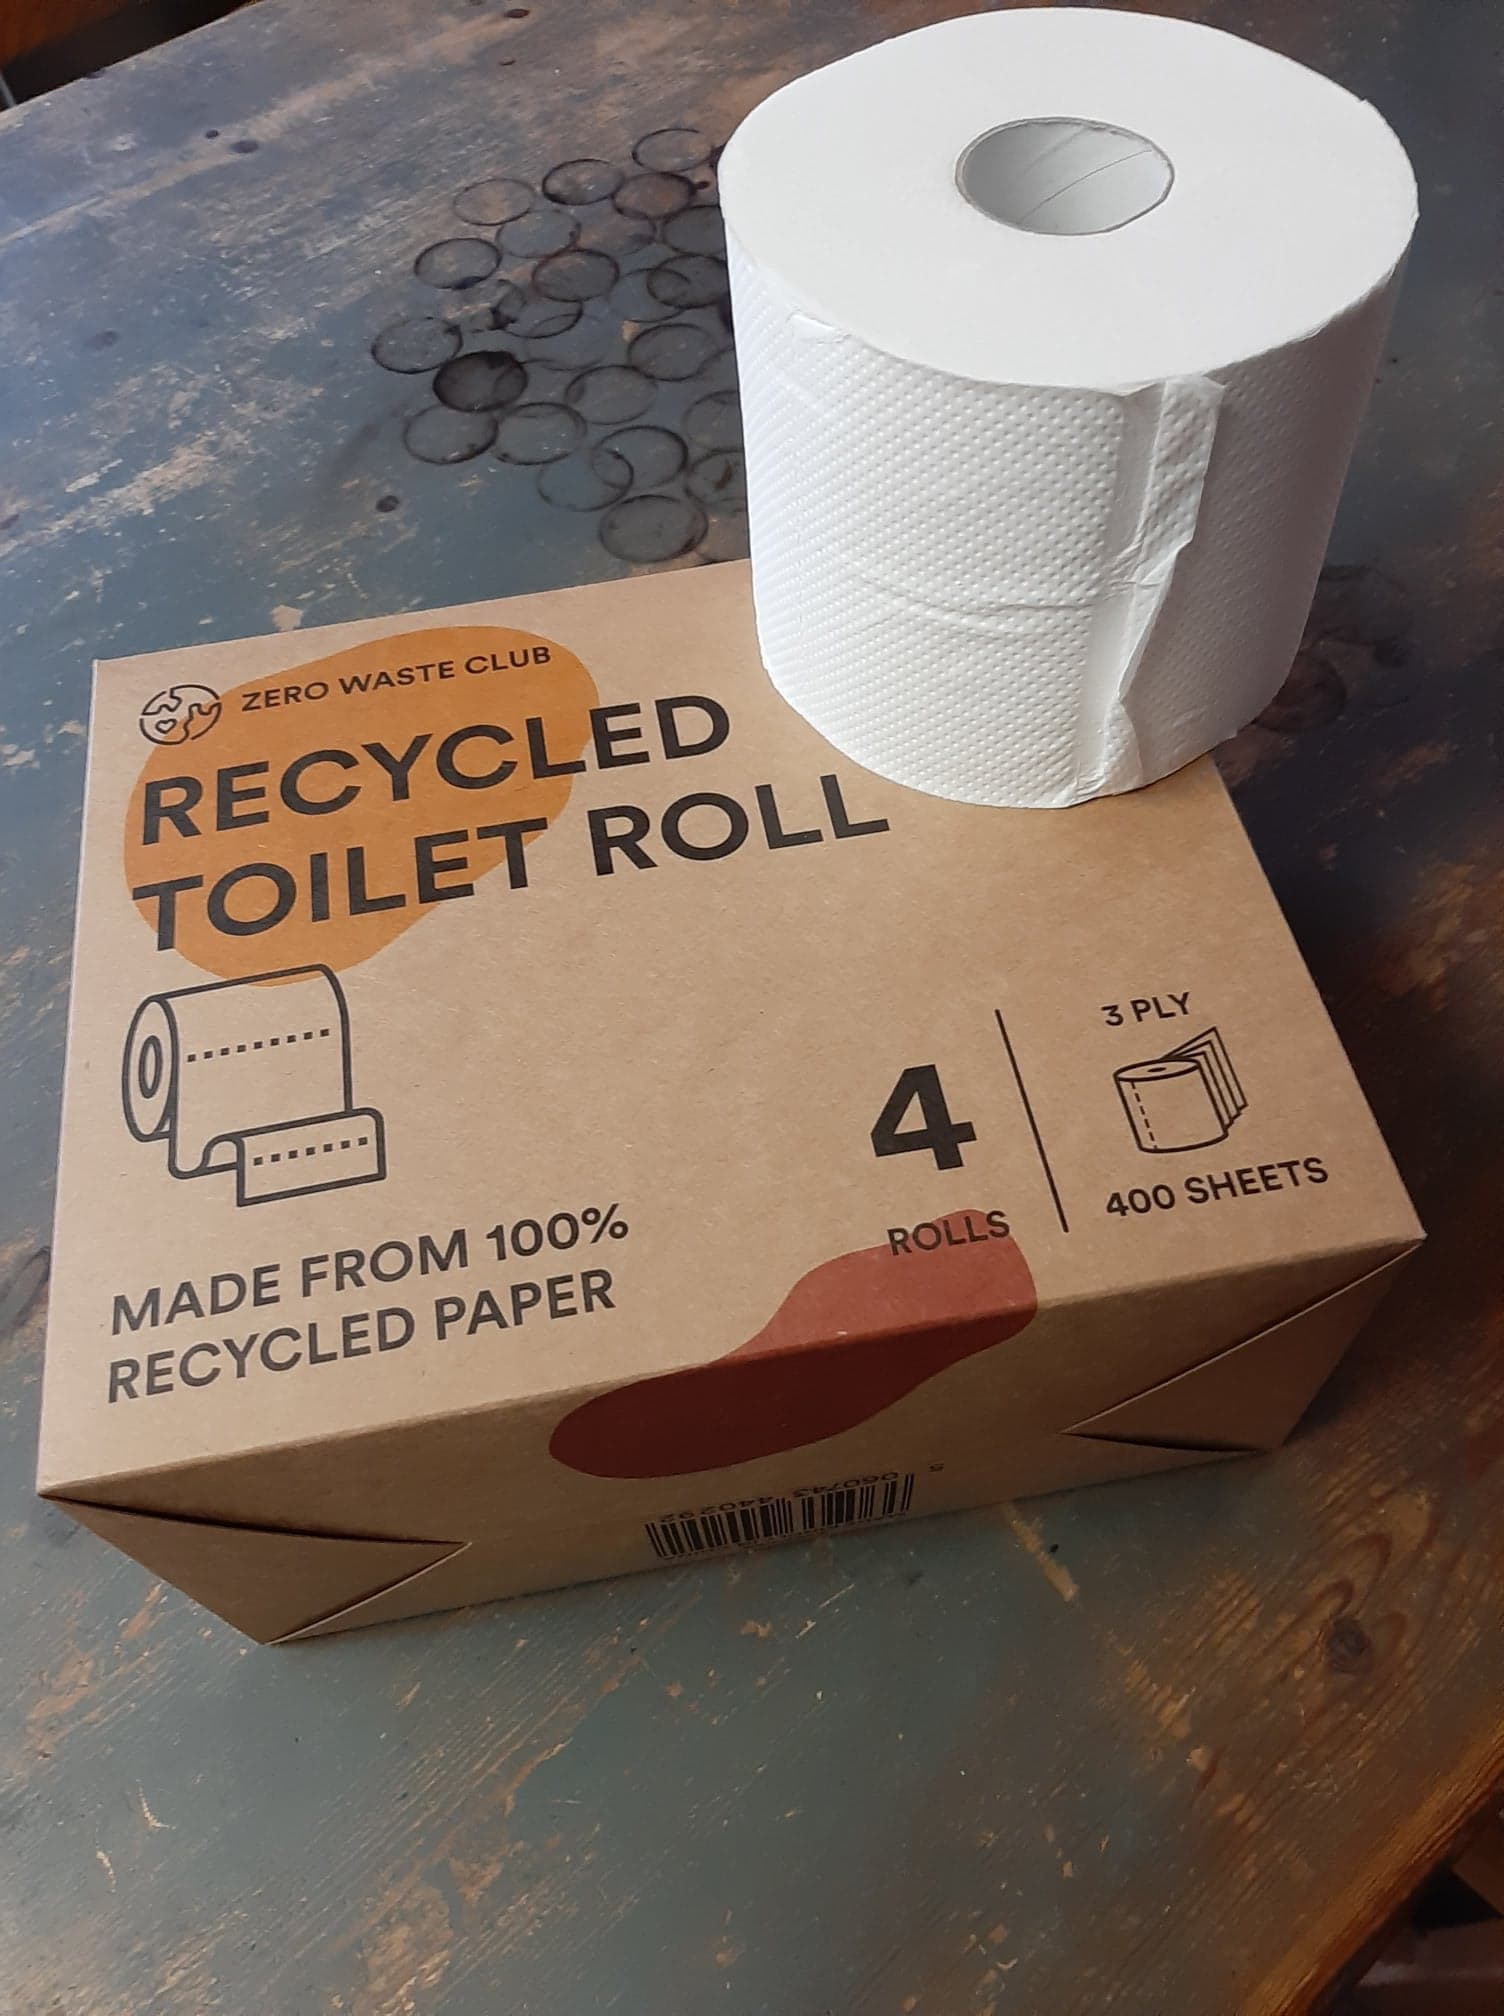 Recycled Toilet Roll - Zero Waste Club